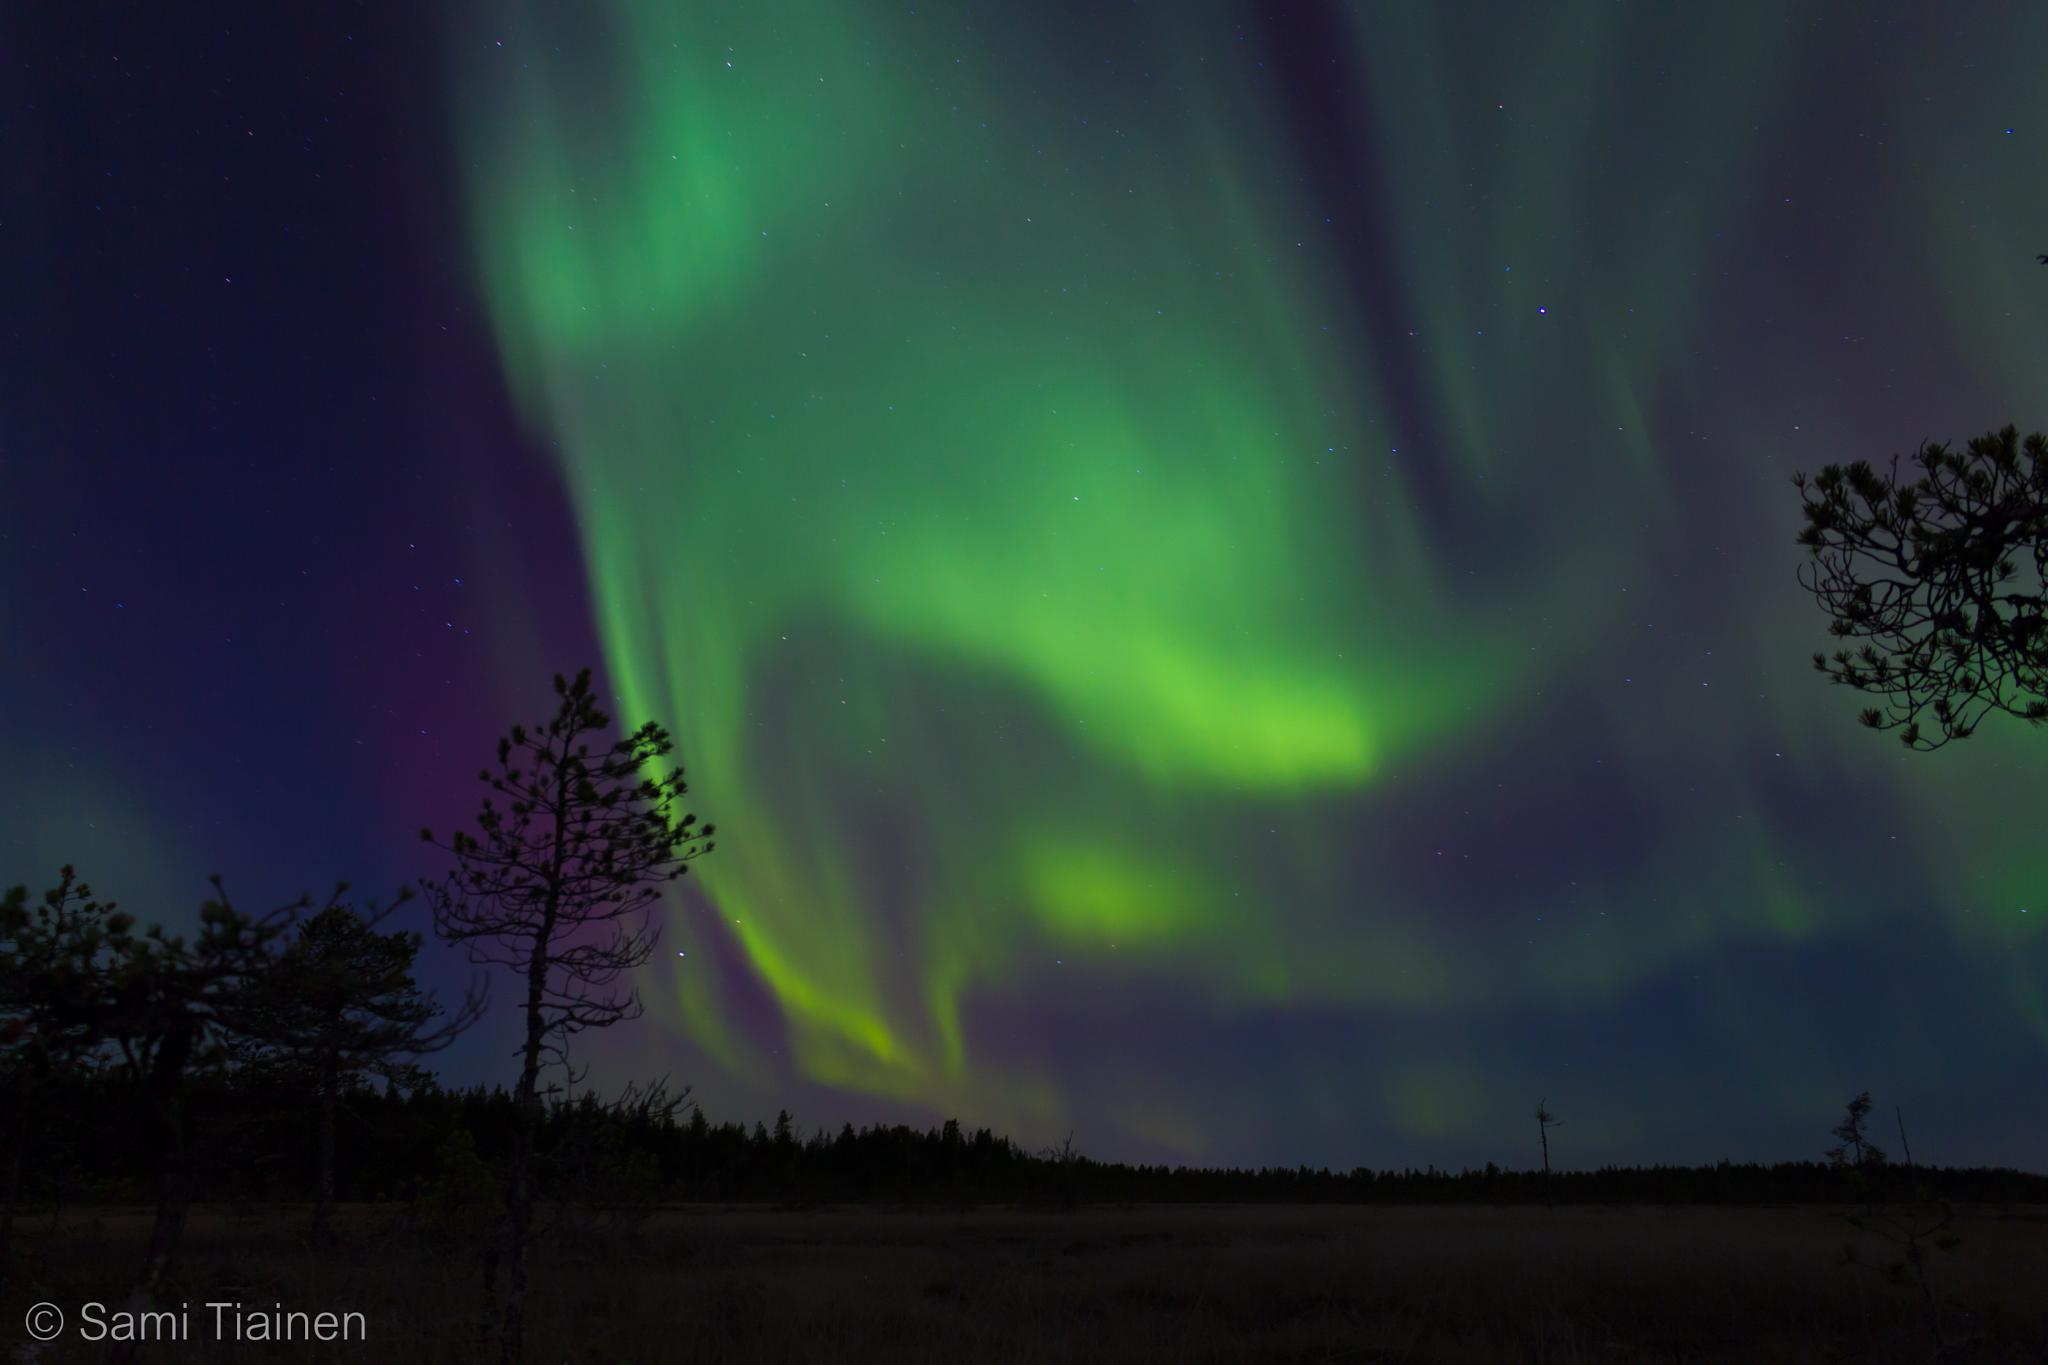 Northern lights by Sami Tiainen